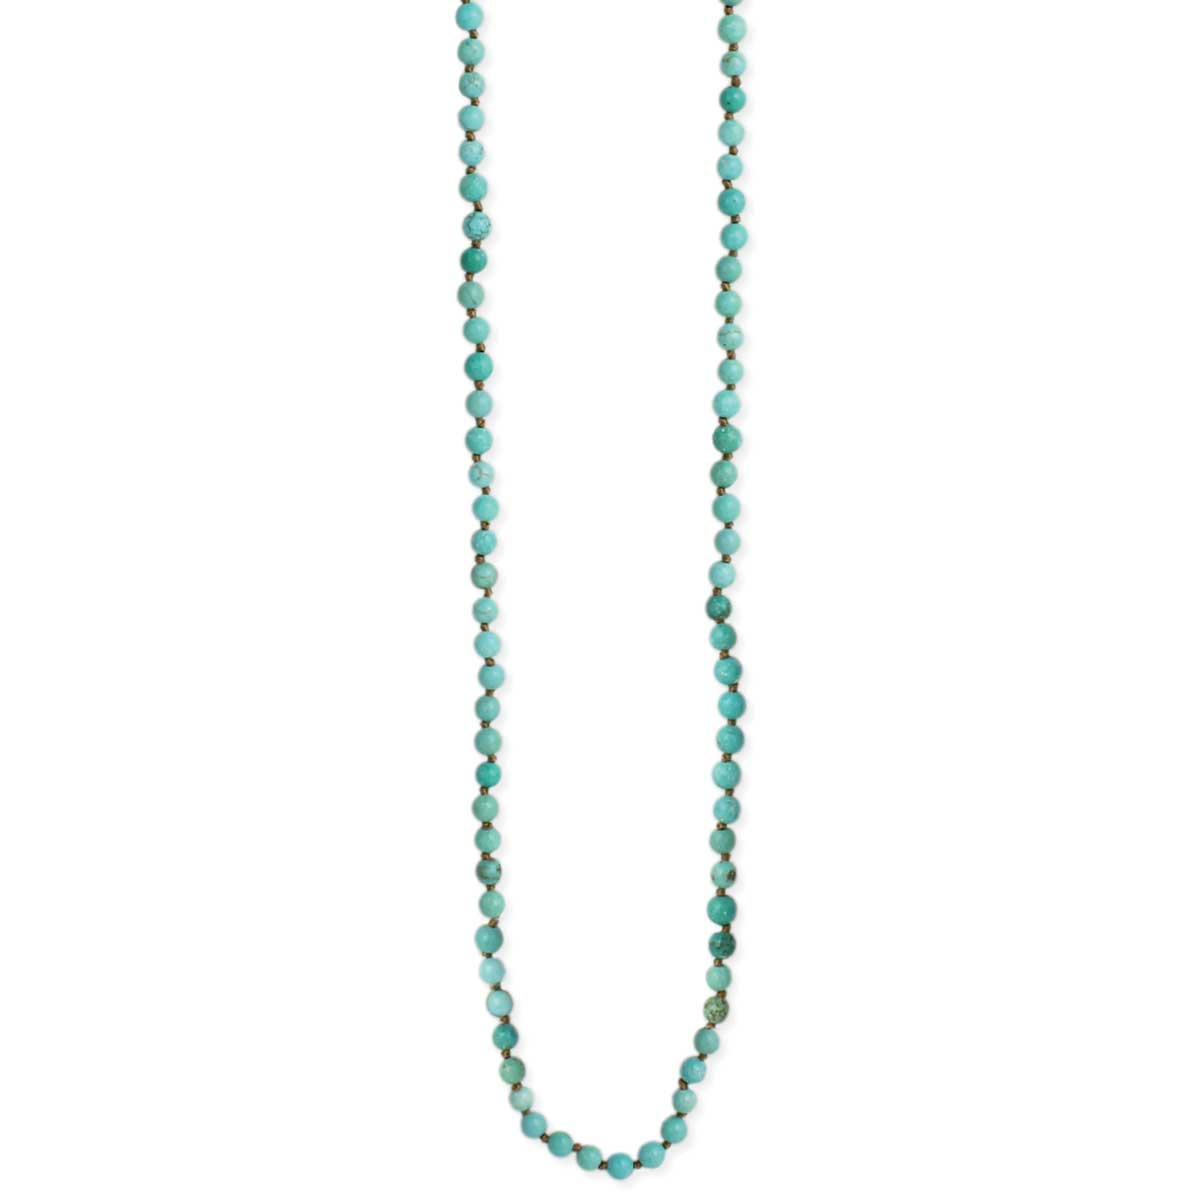 4mm Turquoise Bead Long Necklace